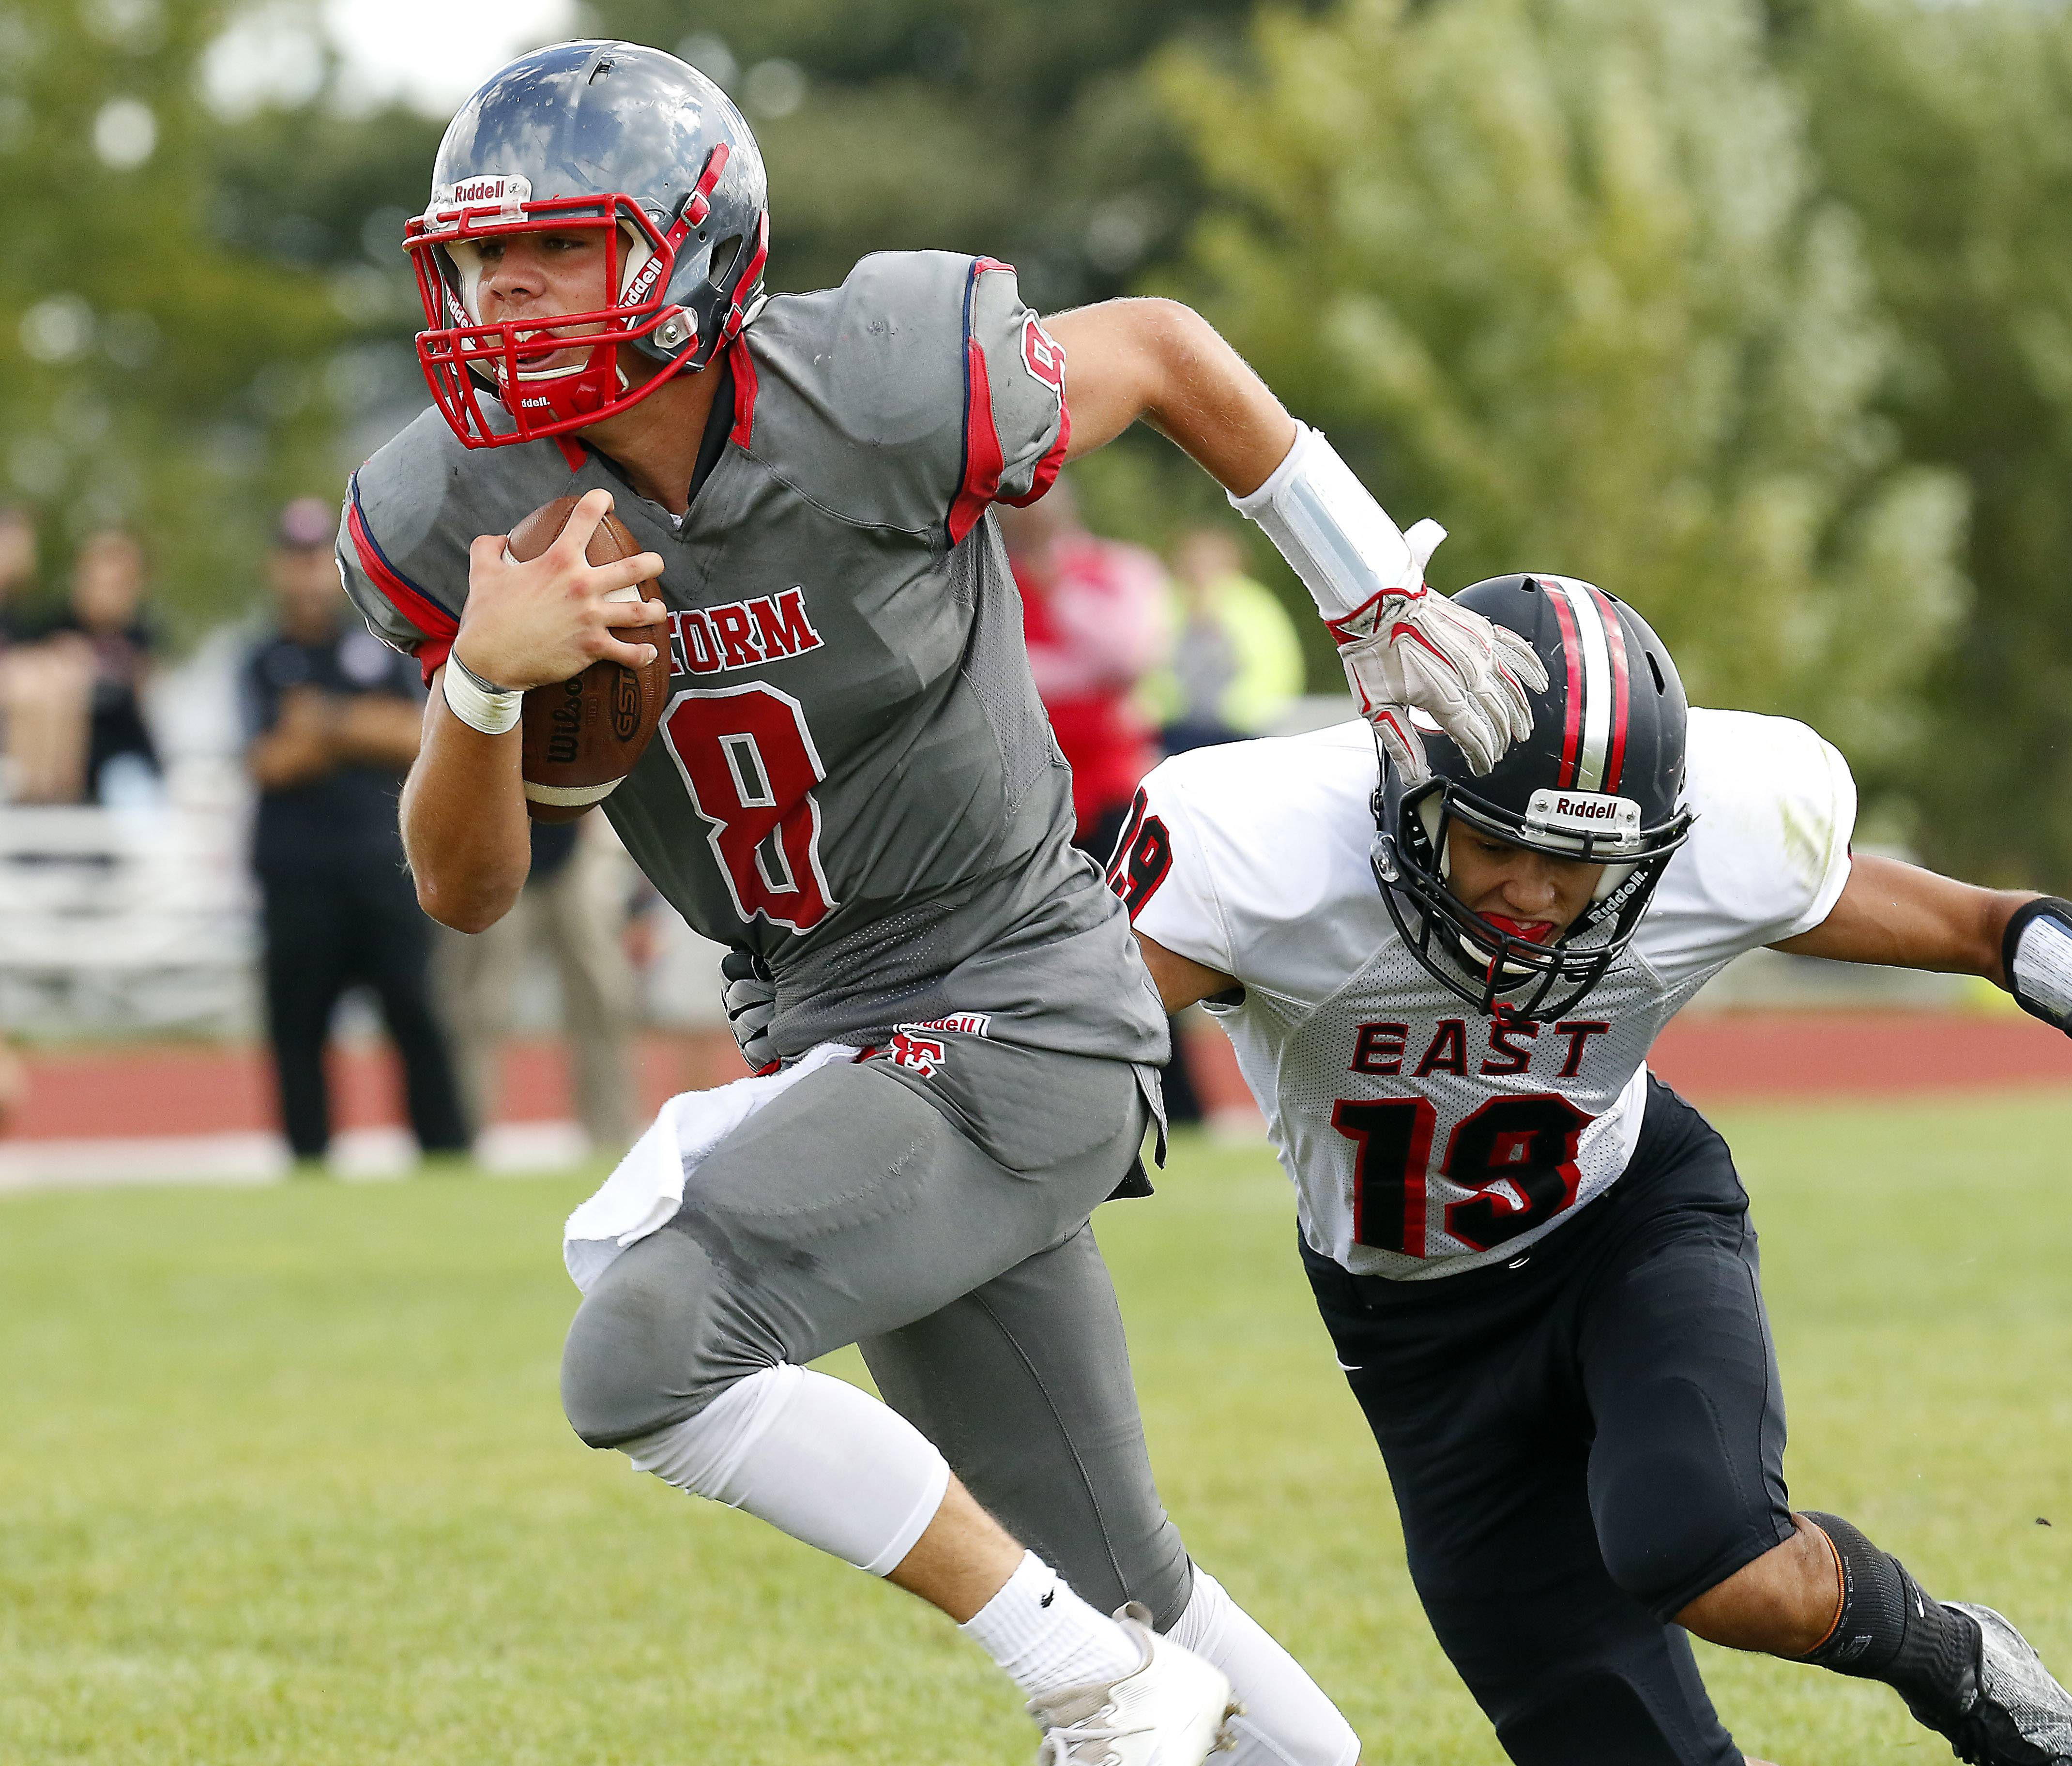 South Elgin's Nate Gomez (8) will return to quarterback the Storm this season.